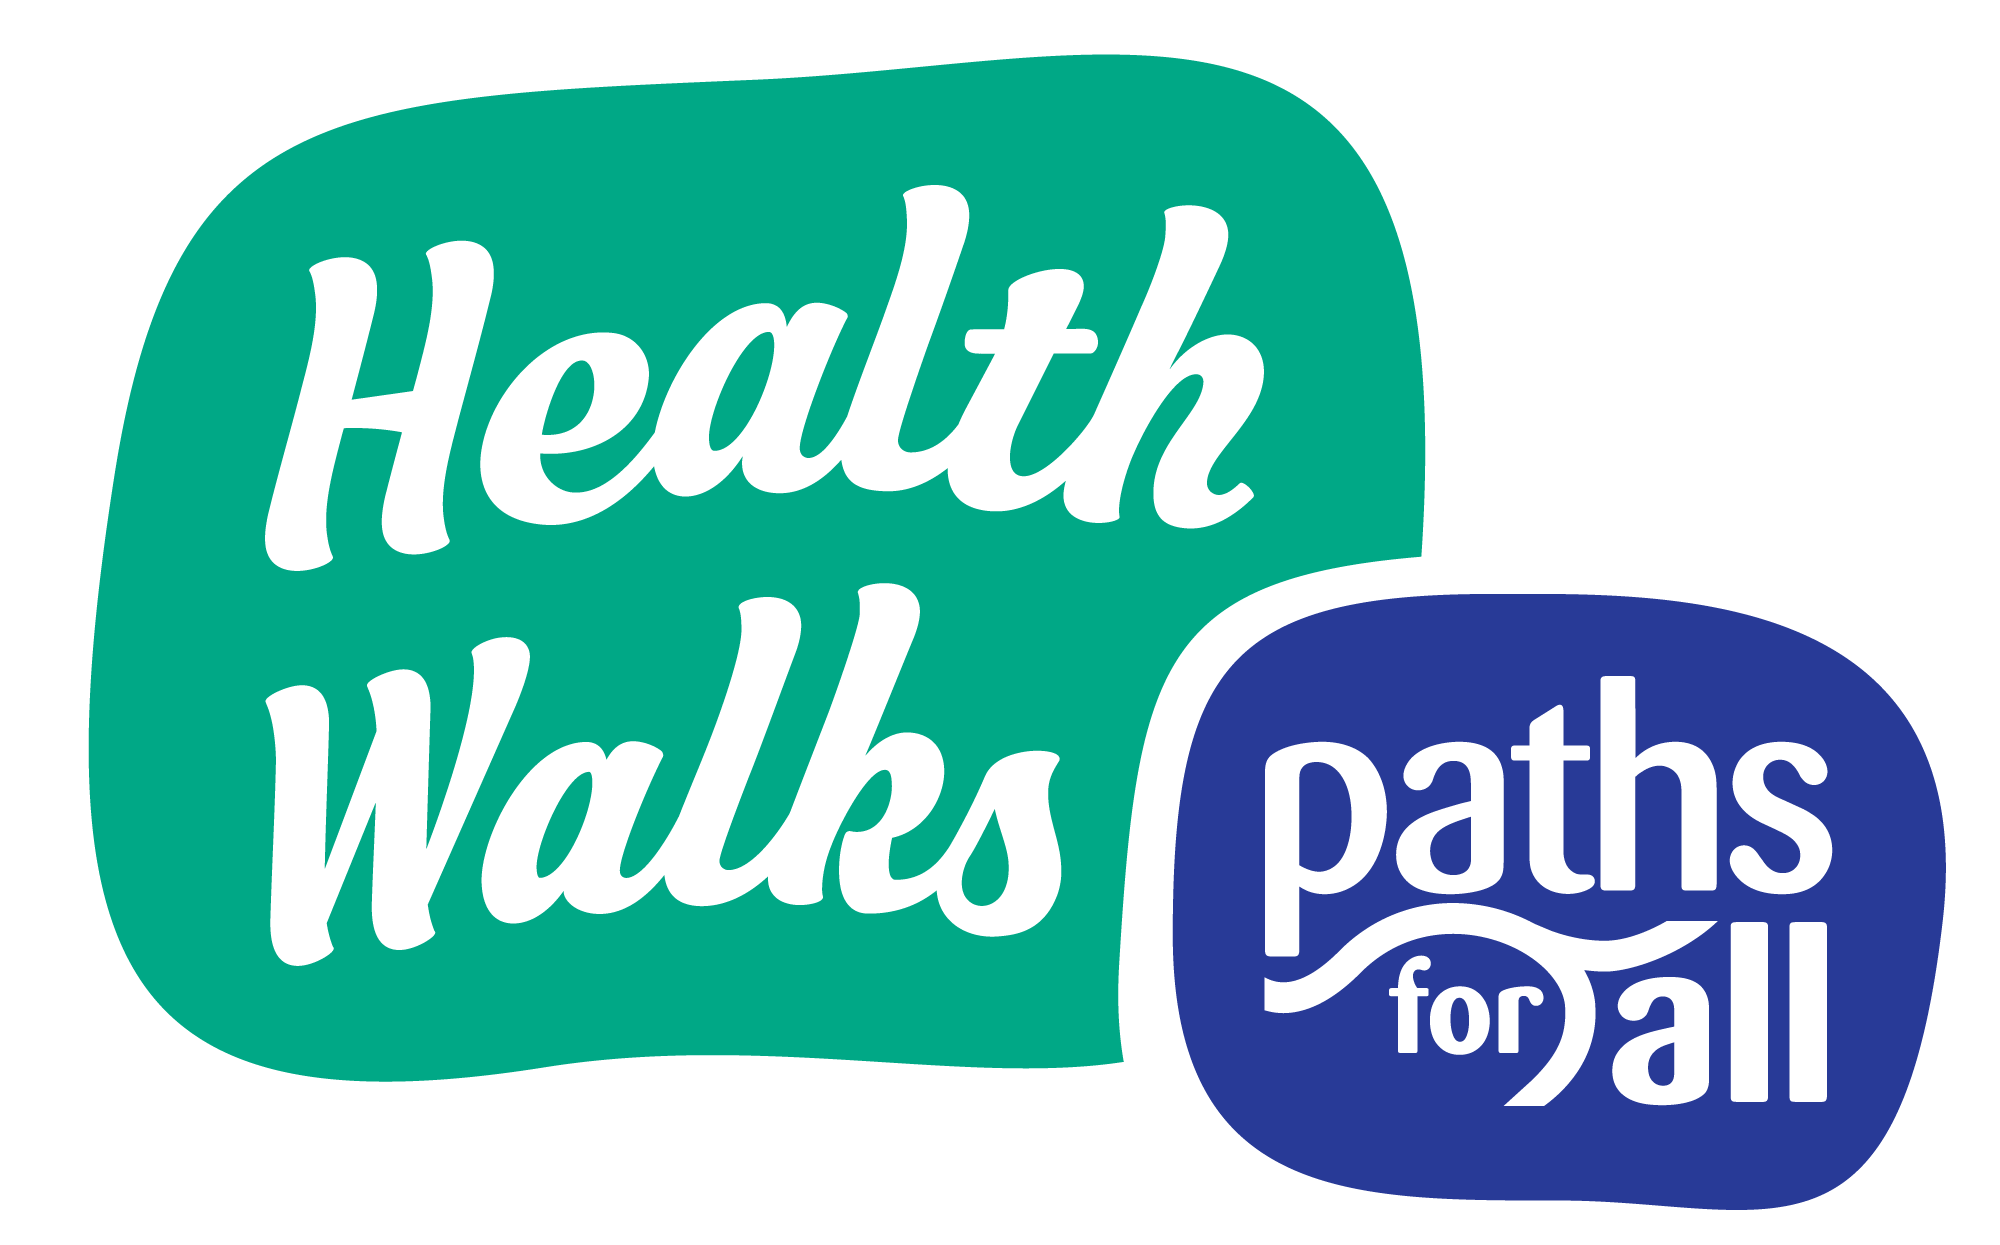 Paths for all, Health Walks logo